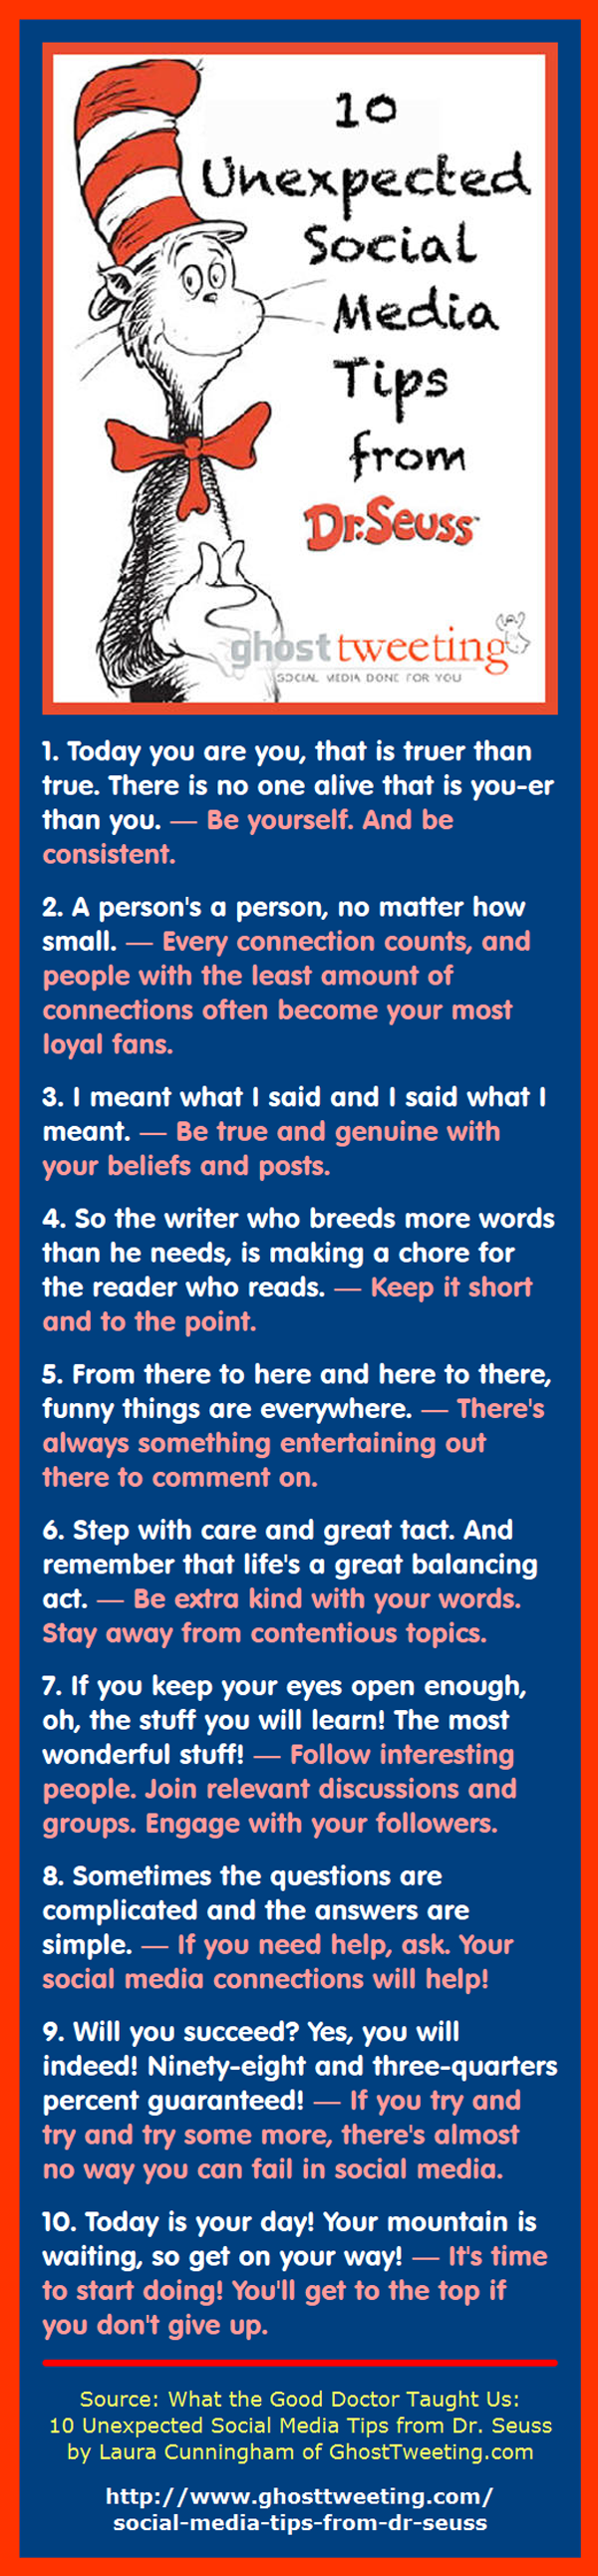 Dr. Seuss: 10 Unexpected Social Media Tips